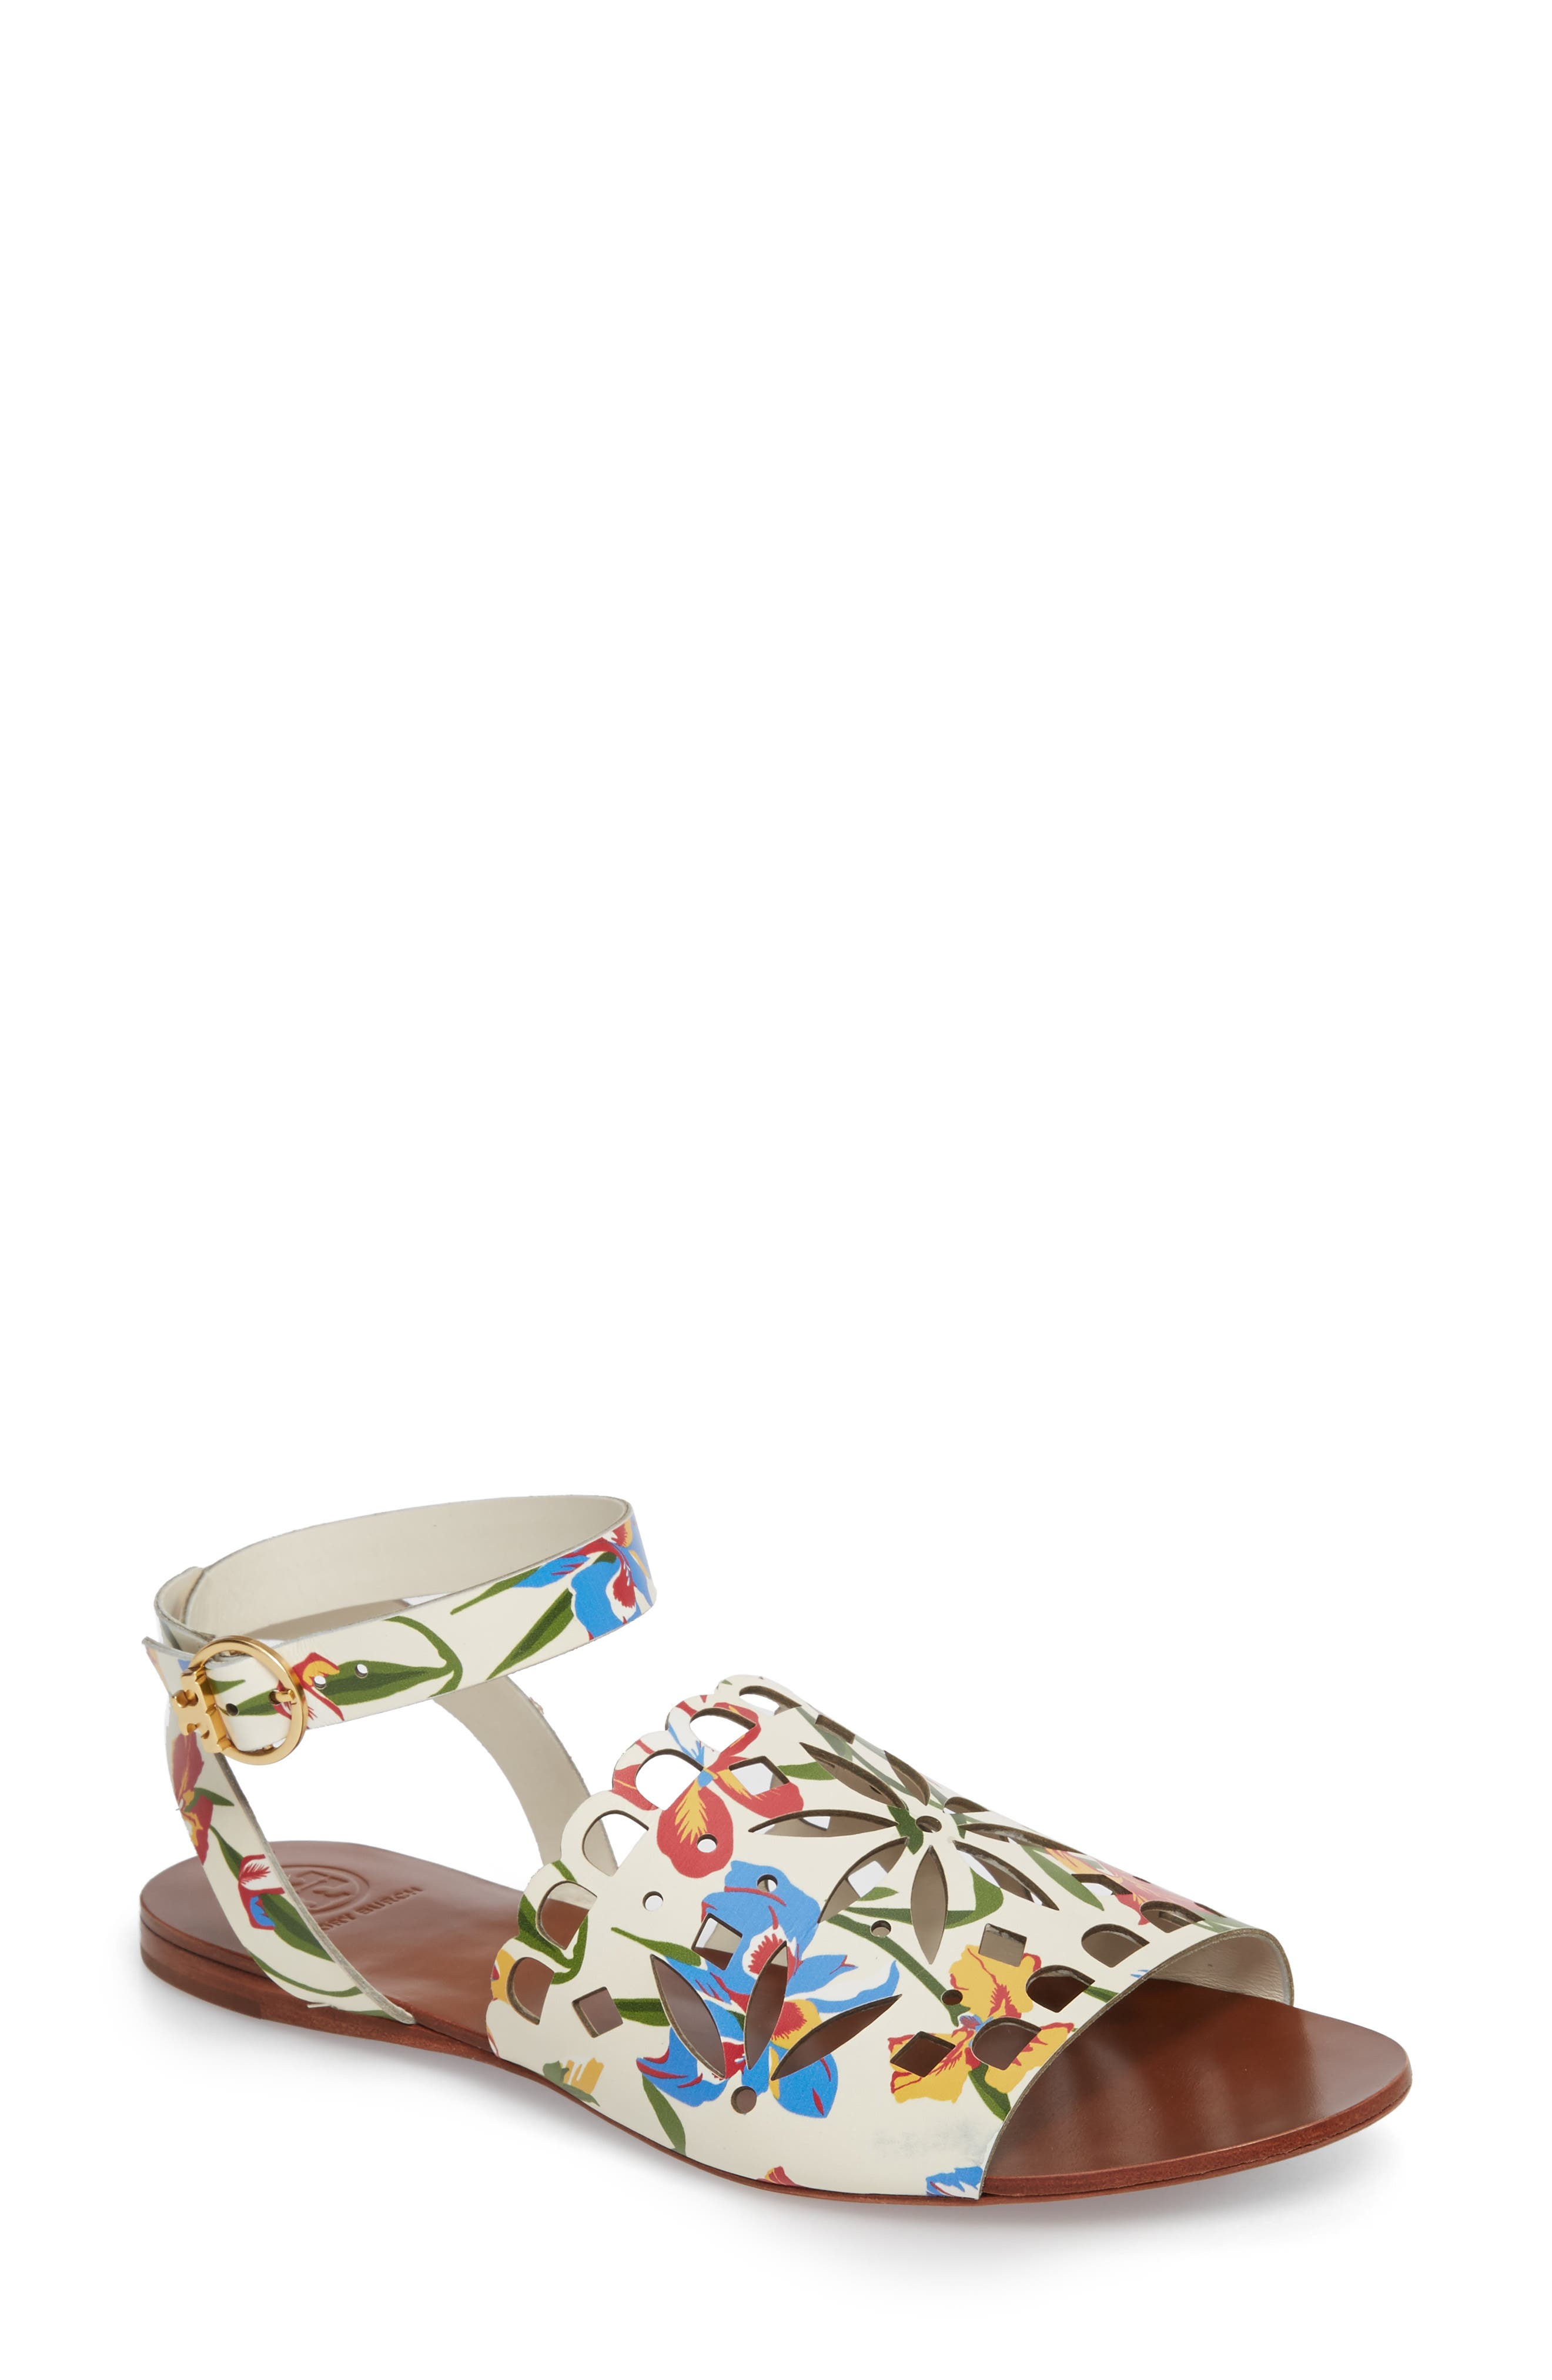 1b672e9cb430 Tory Burch May Printed Floral Ankle Strap Sandal In Painted Iris ...